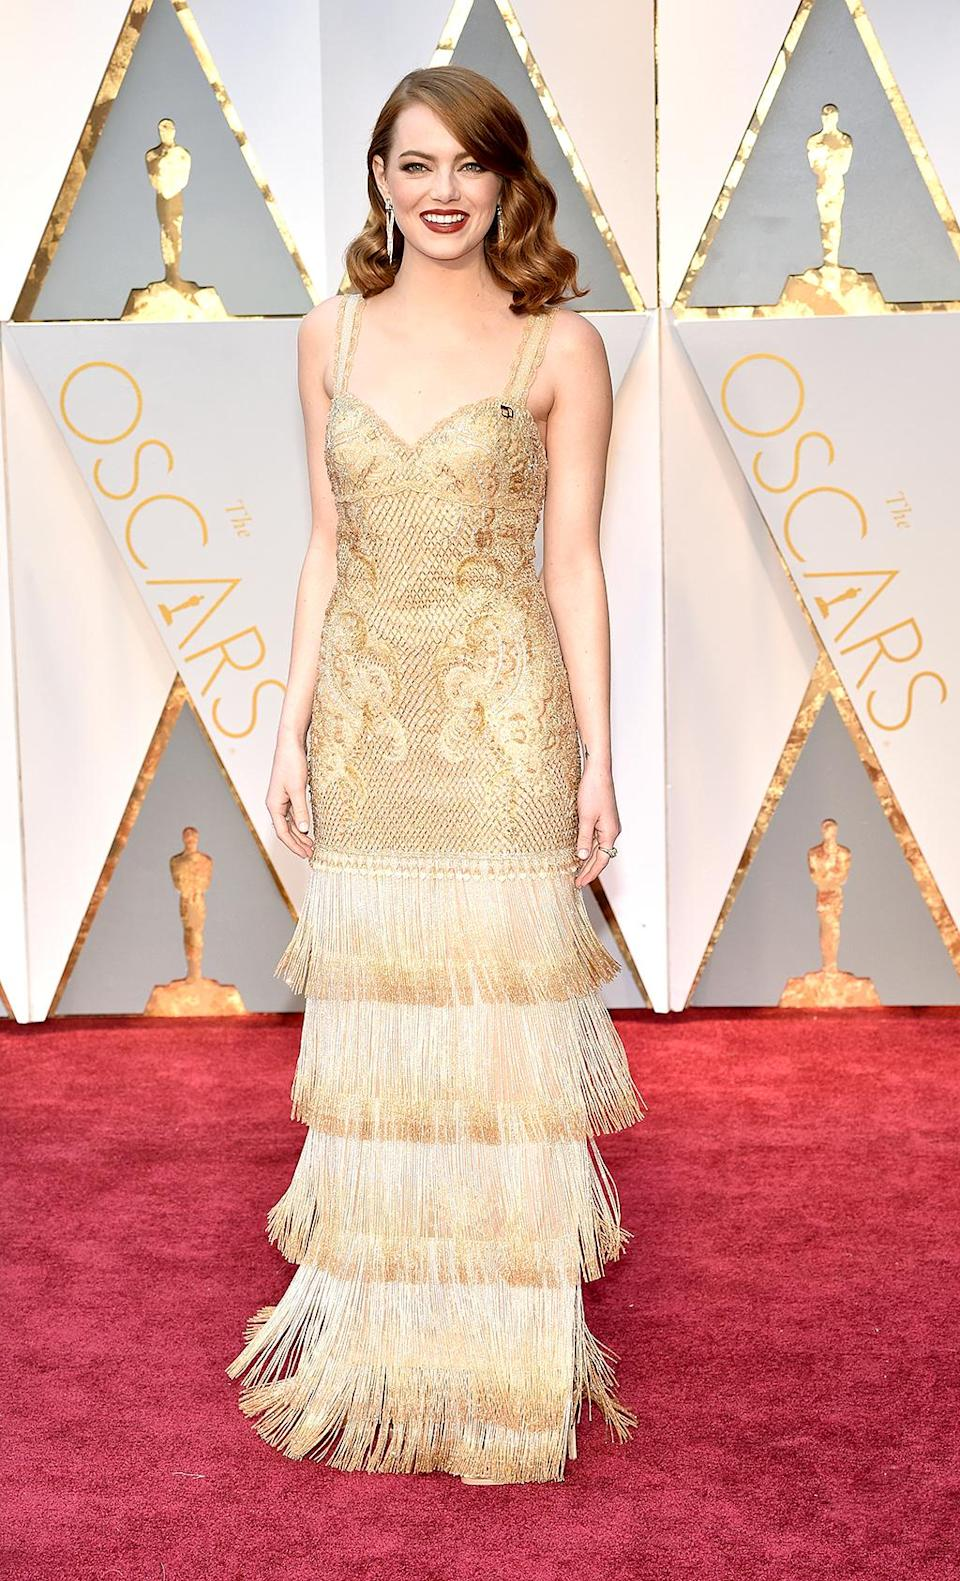 """<p>Emma Stone attends the 89th Annual Academy Awards at Hollywood & Highland Center on Feb. 26, 2017 in Hollywood, California. (Photo by Kevin Mazur/Getty Images)<br><br><a href=""""https://www.yahoo.com/style/oscars-2017-vote-for-the-best-and-worst-dressed-225105125.html"""" data-ylk=""""slk:Go here to vote for best and worst dressed.;outcm:mb_qualified_link;_E:mb_qualified_link;ct:story;"""" class=""""link rapid-noclick-resp yahoo-link"""">Go here to vote for best and worst dressed.</a> </p>"""